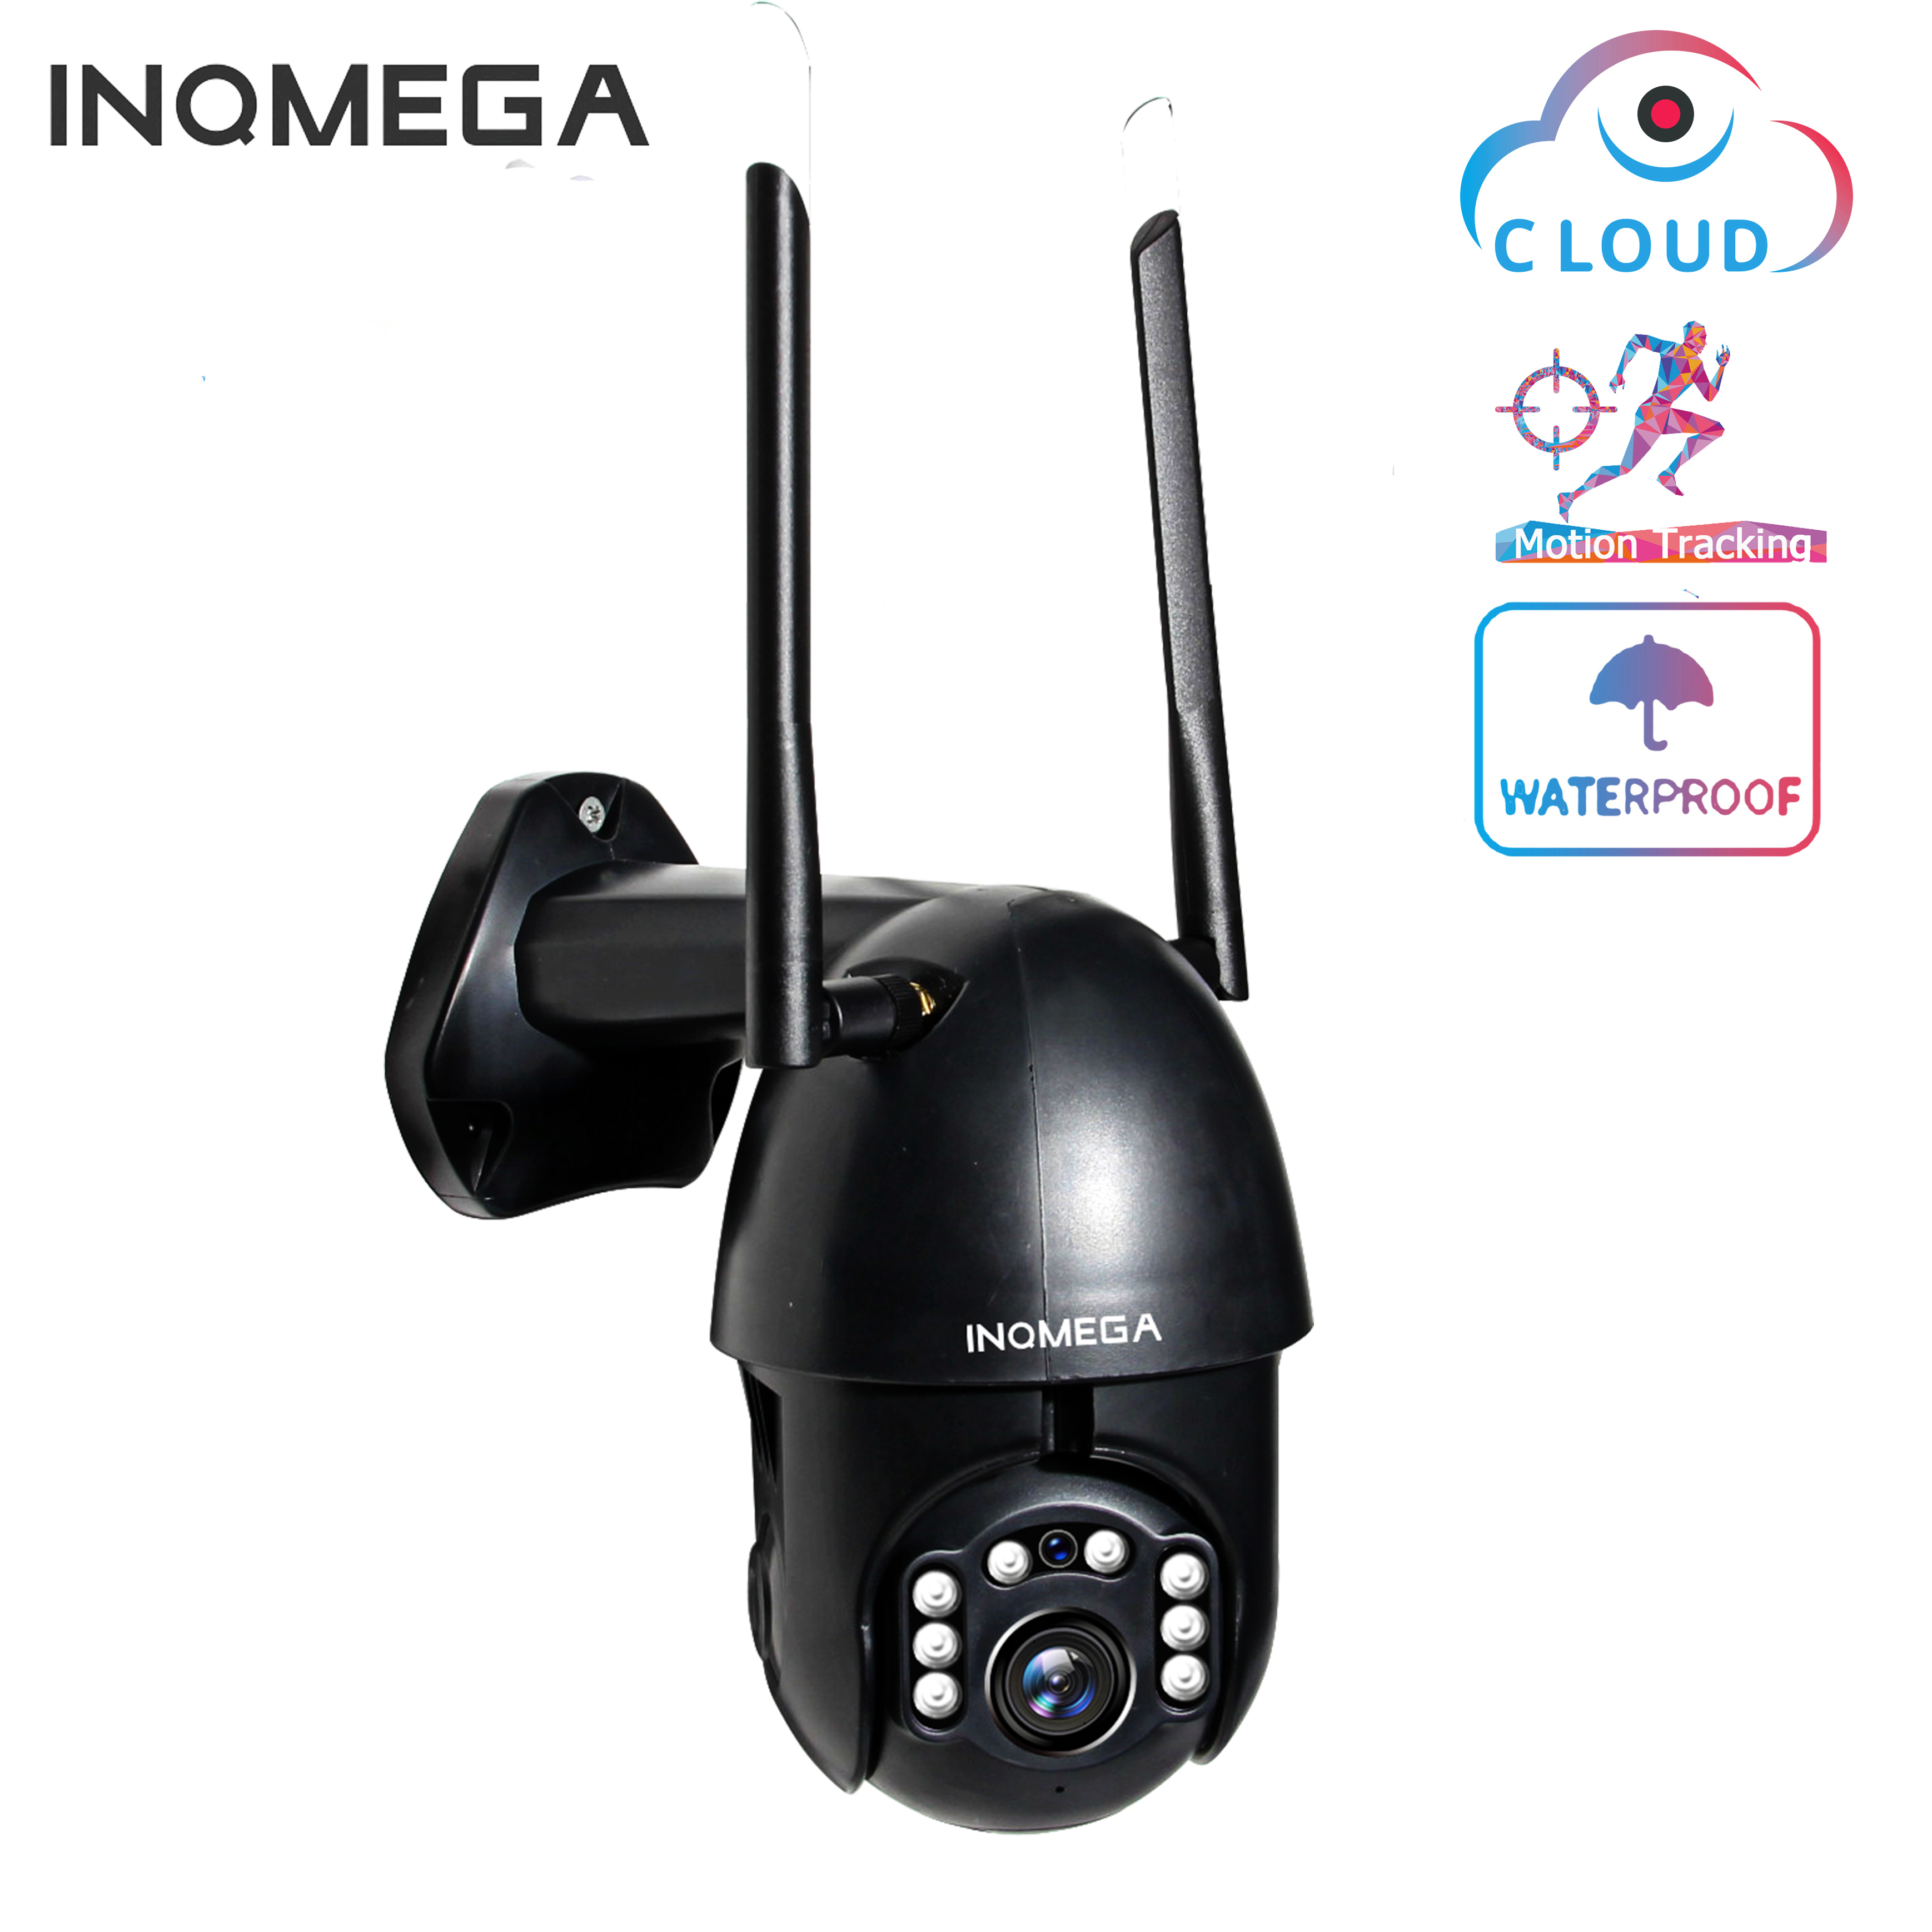 INQMEGA WiFi  1080P IP Camera  Wireless Auto Tracking PTZ Speed Dome Camera Outdoor CCTV Security Surveillance Waterproof Camera